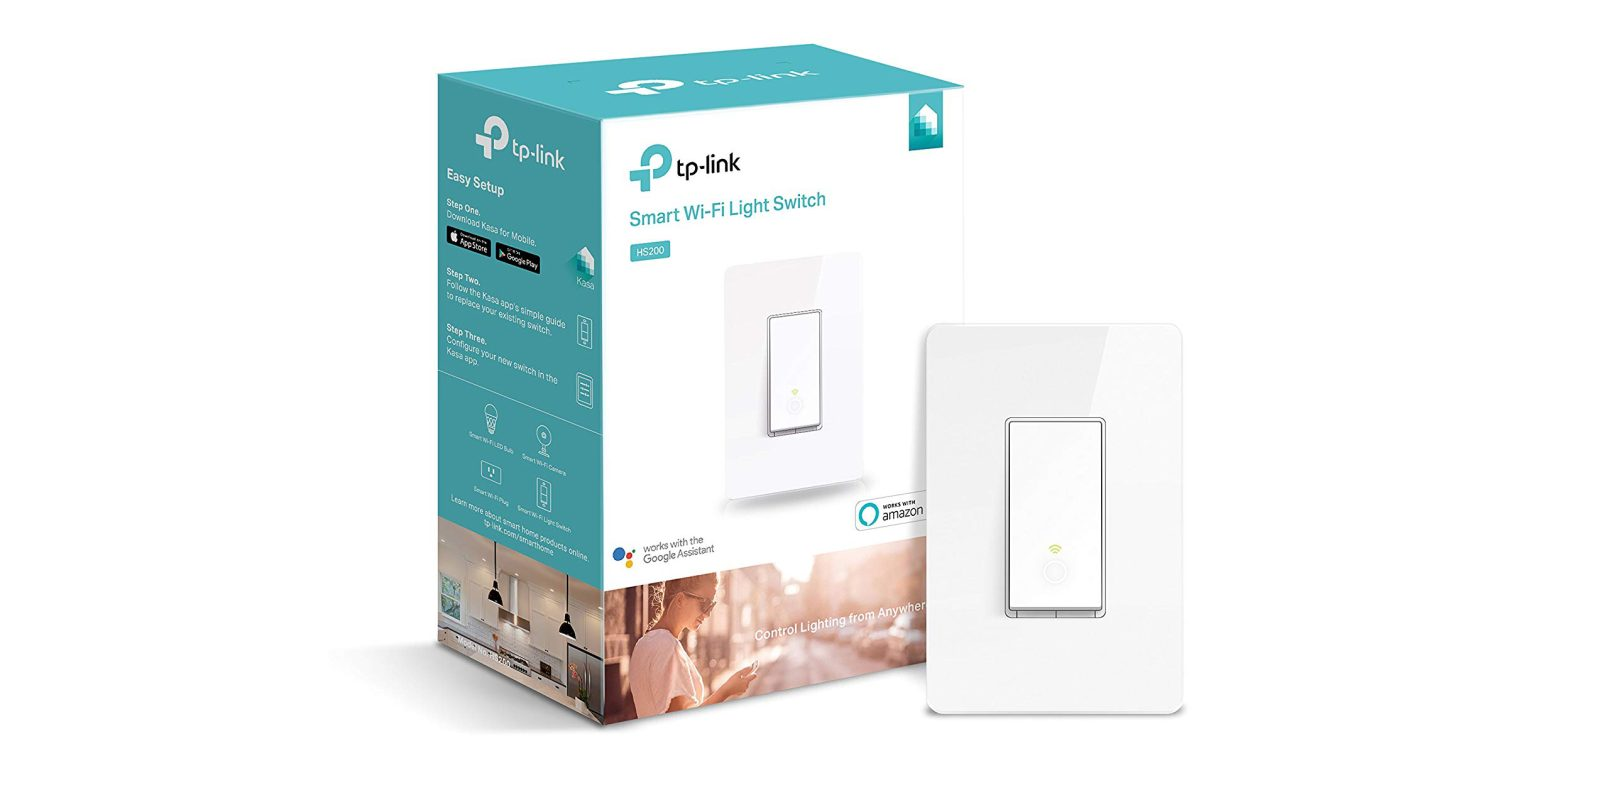 Outfit your home with 3 energy-conscious TP-Link smart